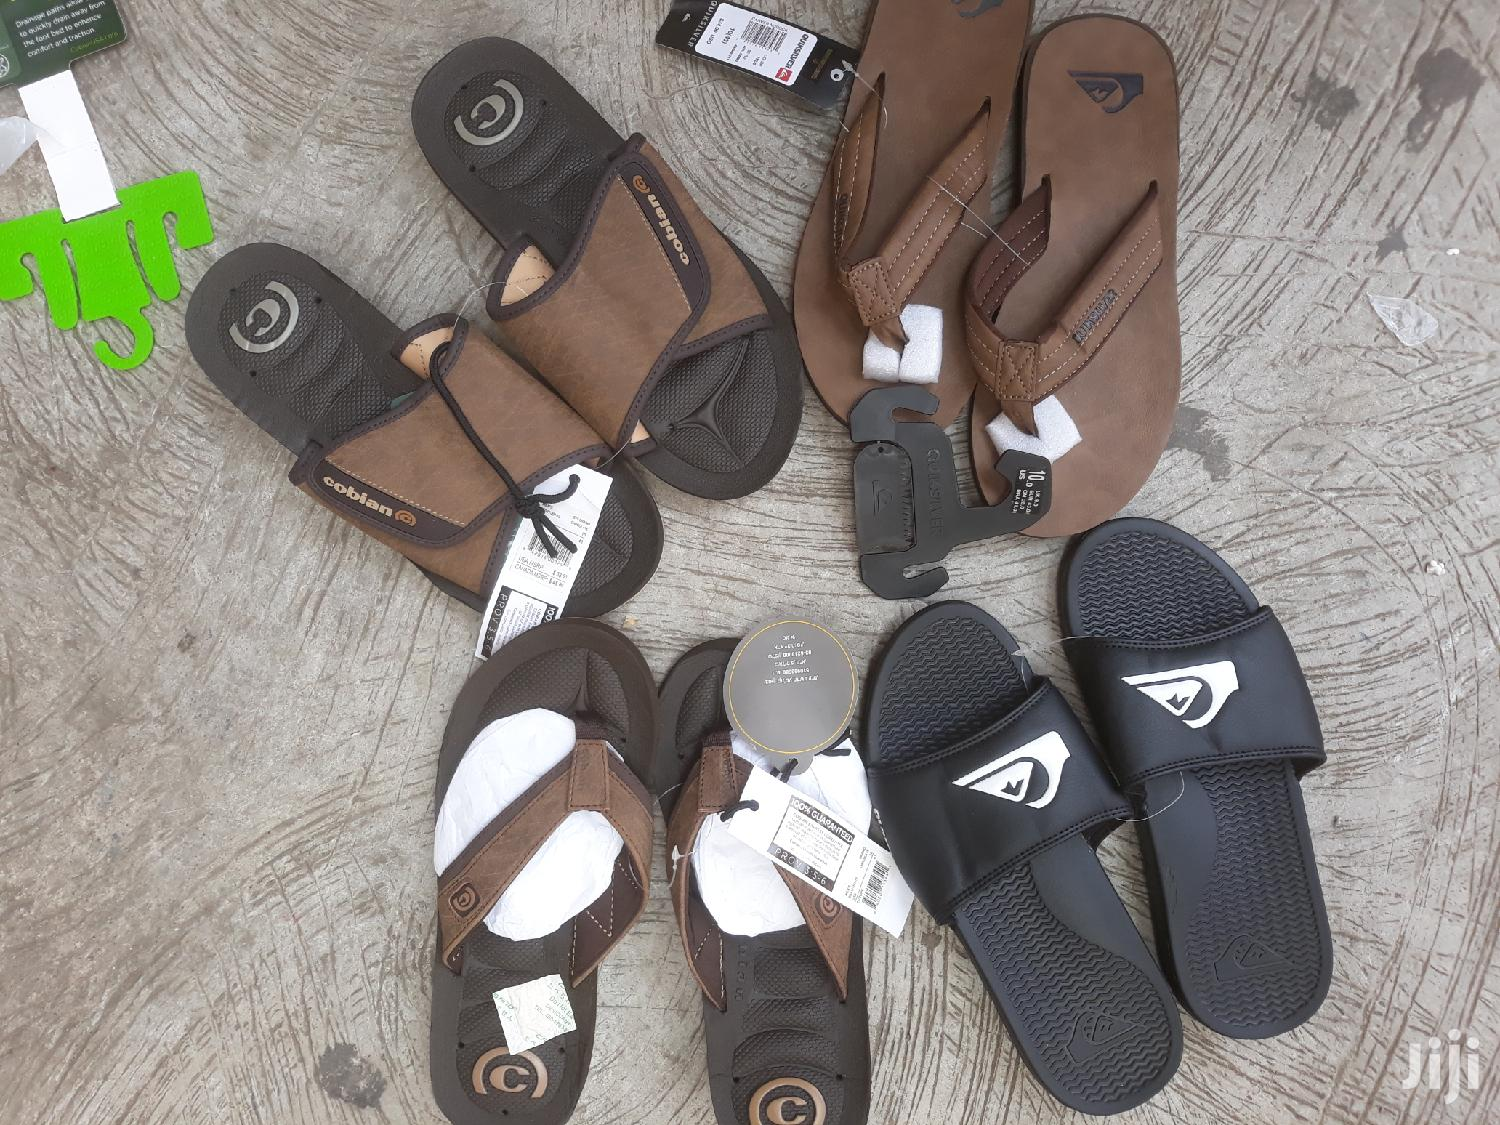 Original Sandals At Cool Price | Shoes for sale in Dansoman, Greater Accra, Ghana